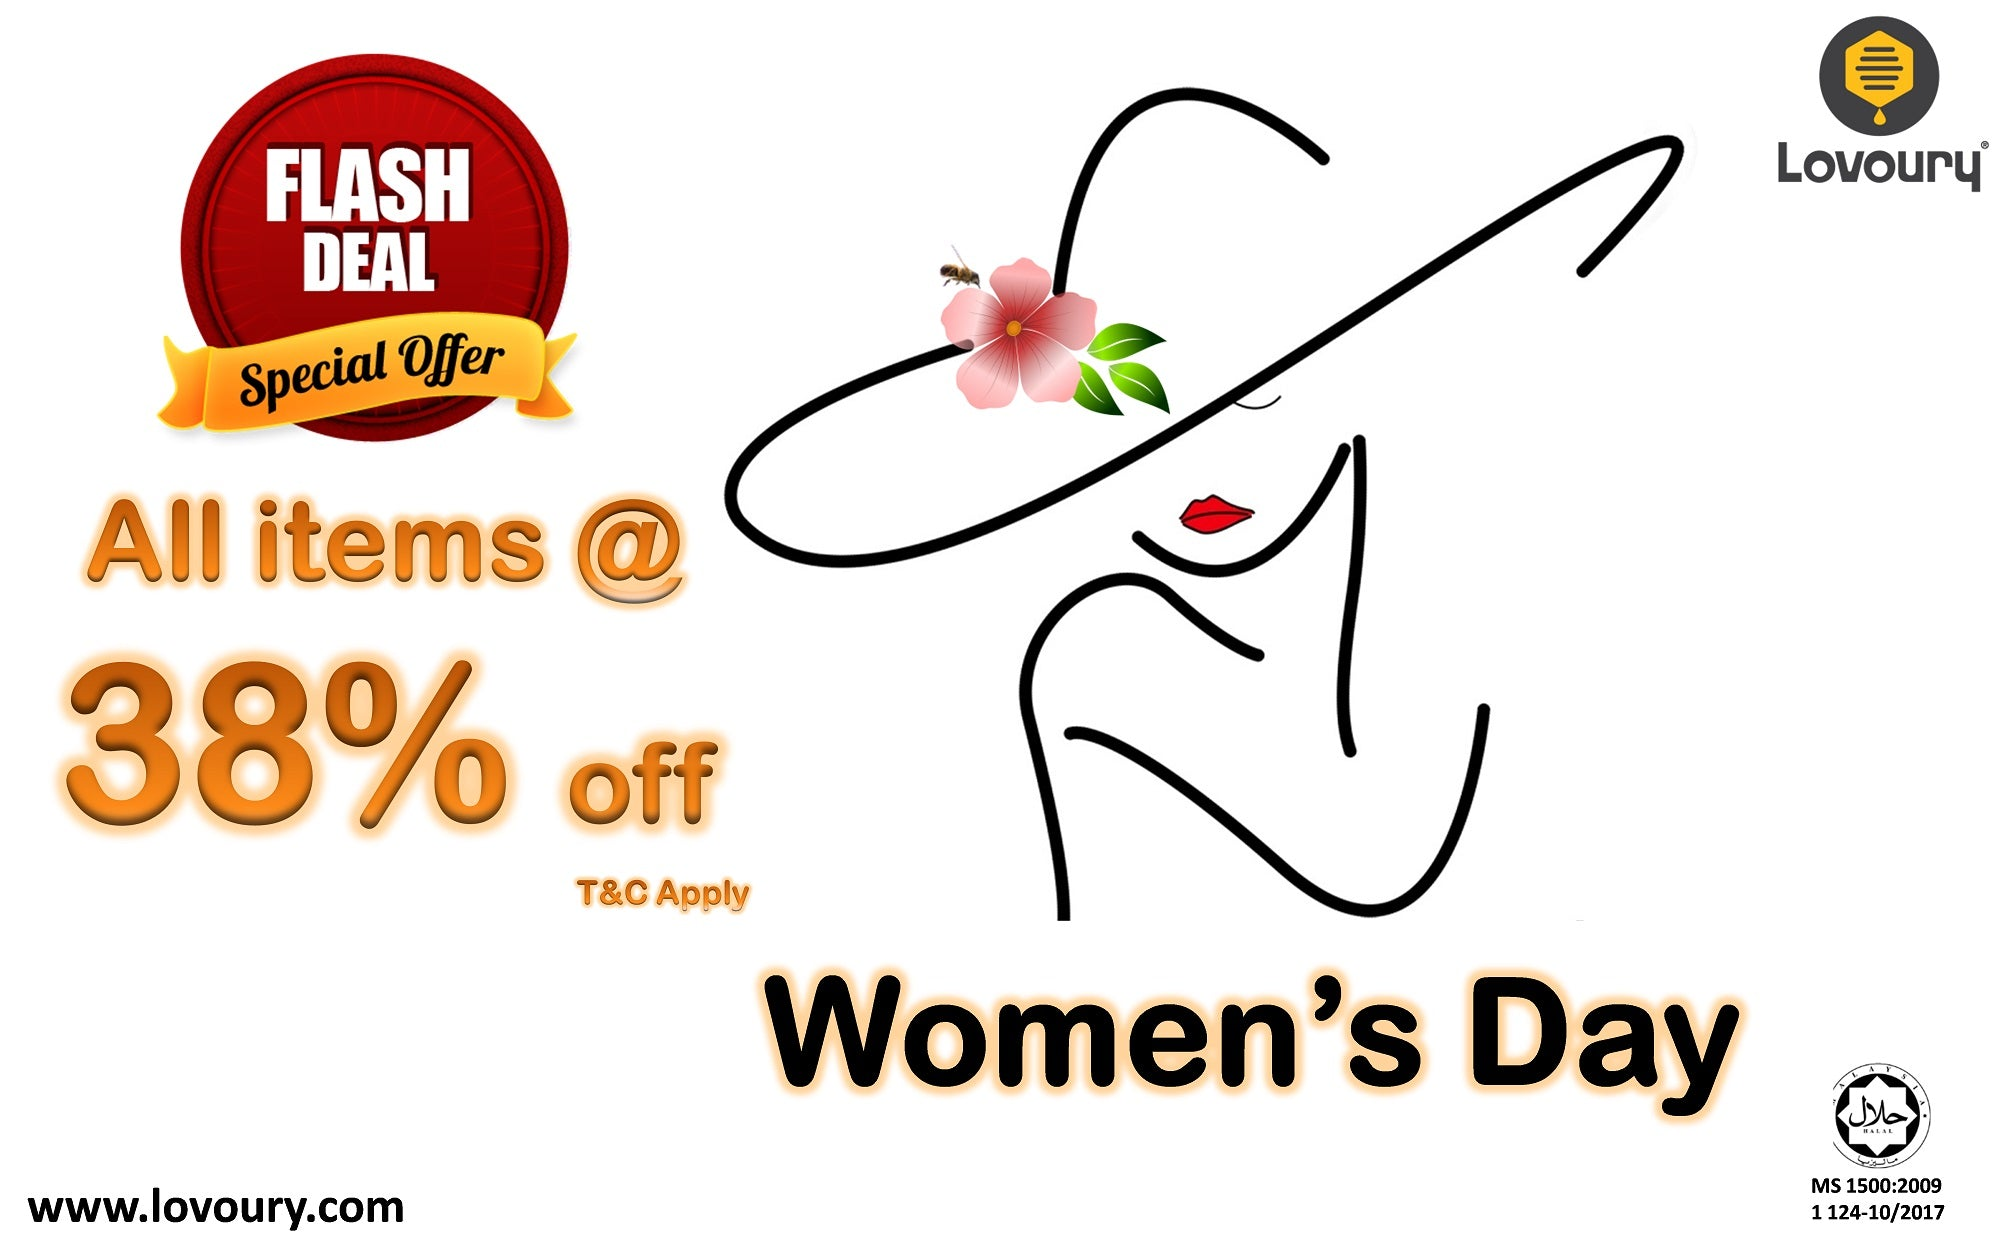 women's day flash deal special offer